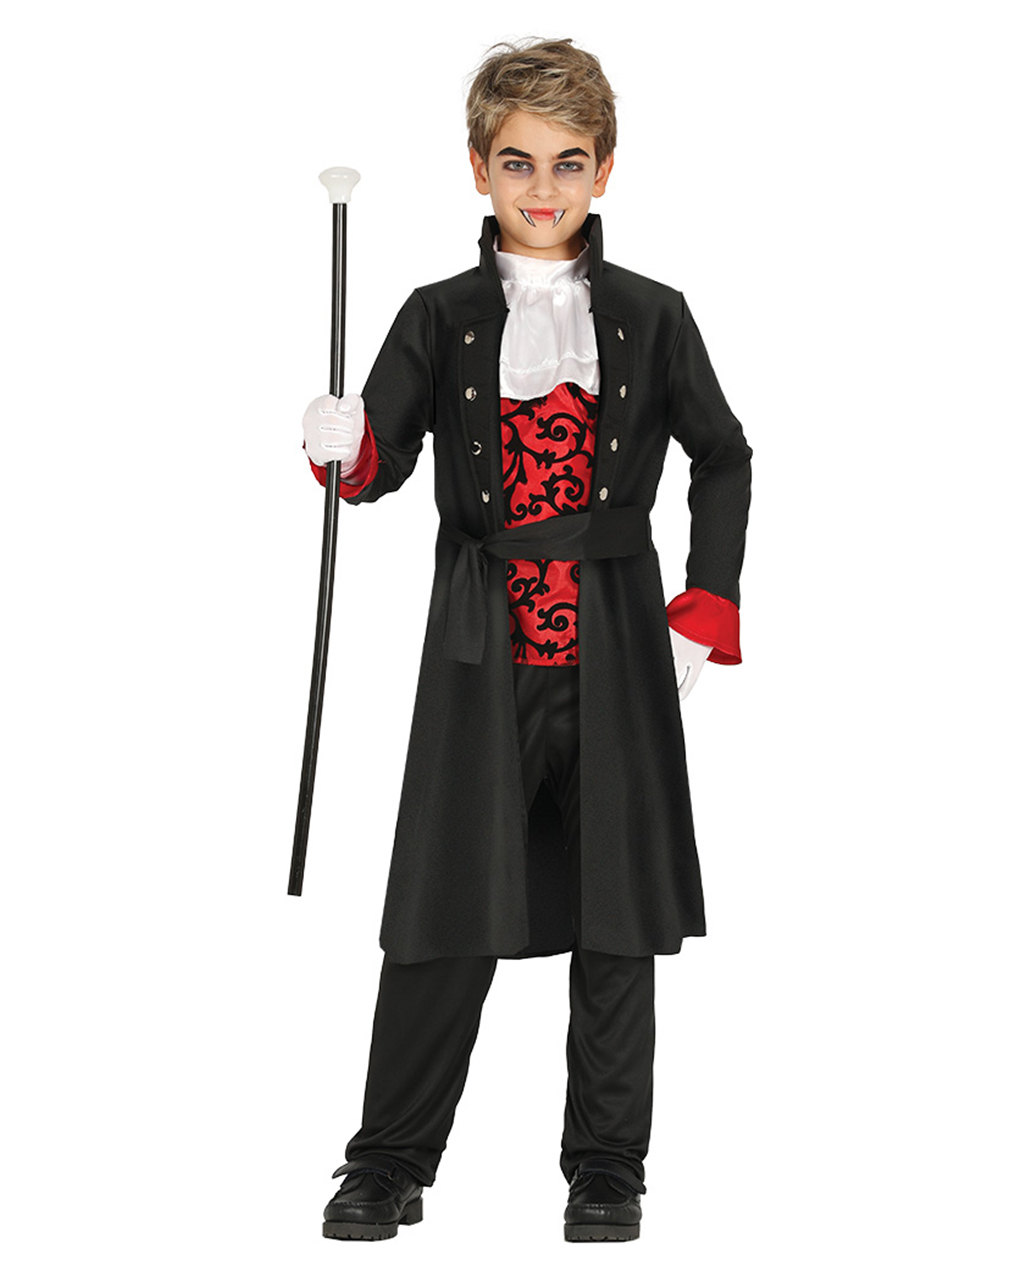 Count Dracula Costume Boys Halloween Vampire Horror Kids Childrens Fancy Dress